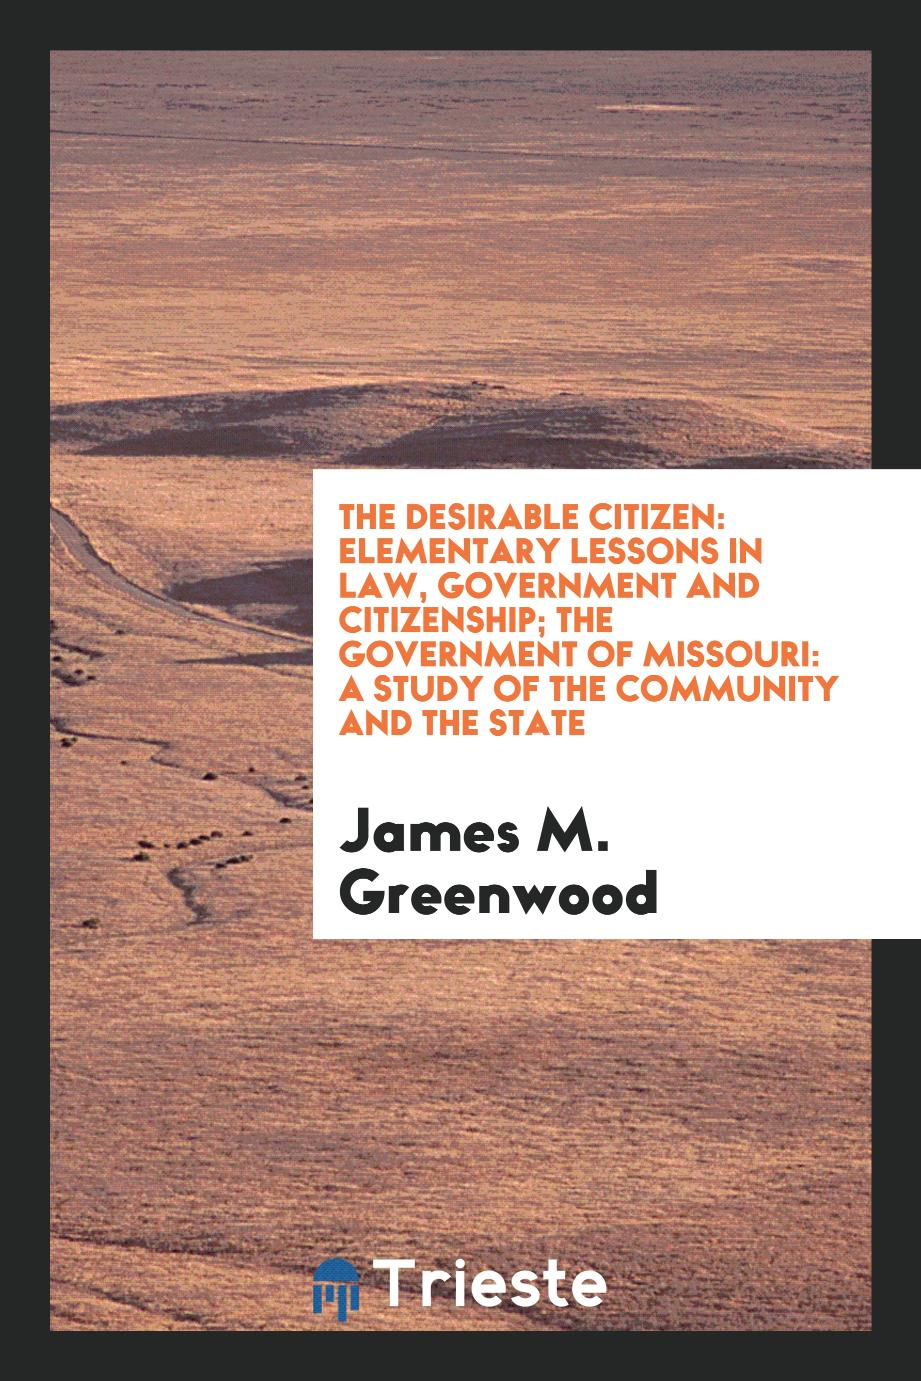 The Desirable Citizen: Elementary Lessons in Law, Government and Citizenship; The Government of Missouri: A Study of the Community and the State